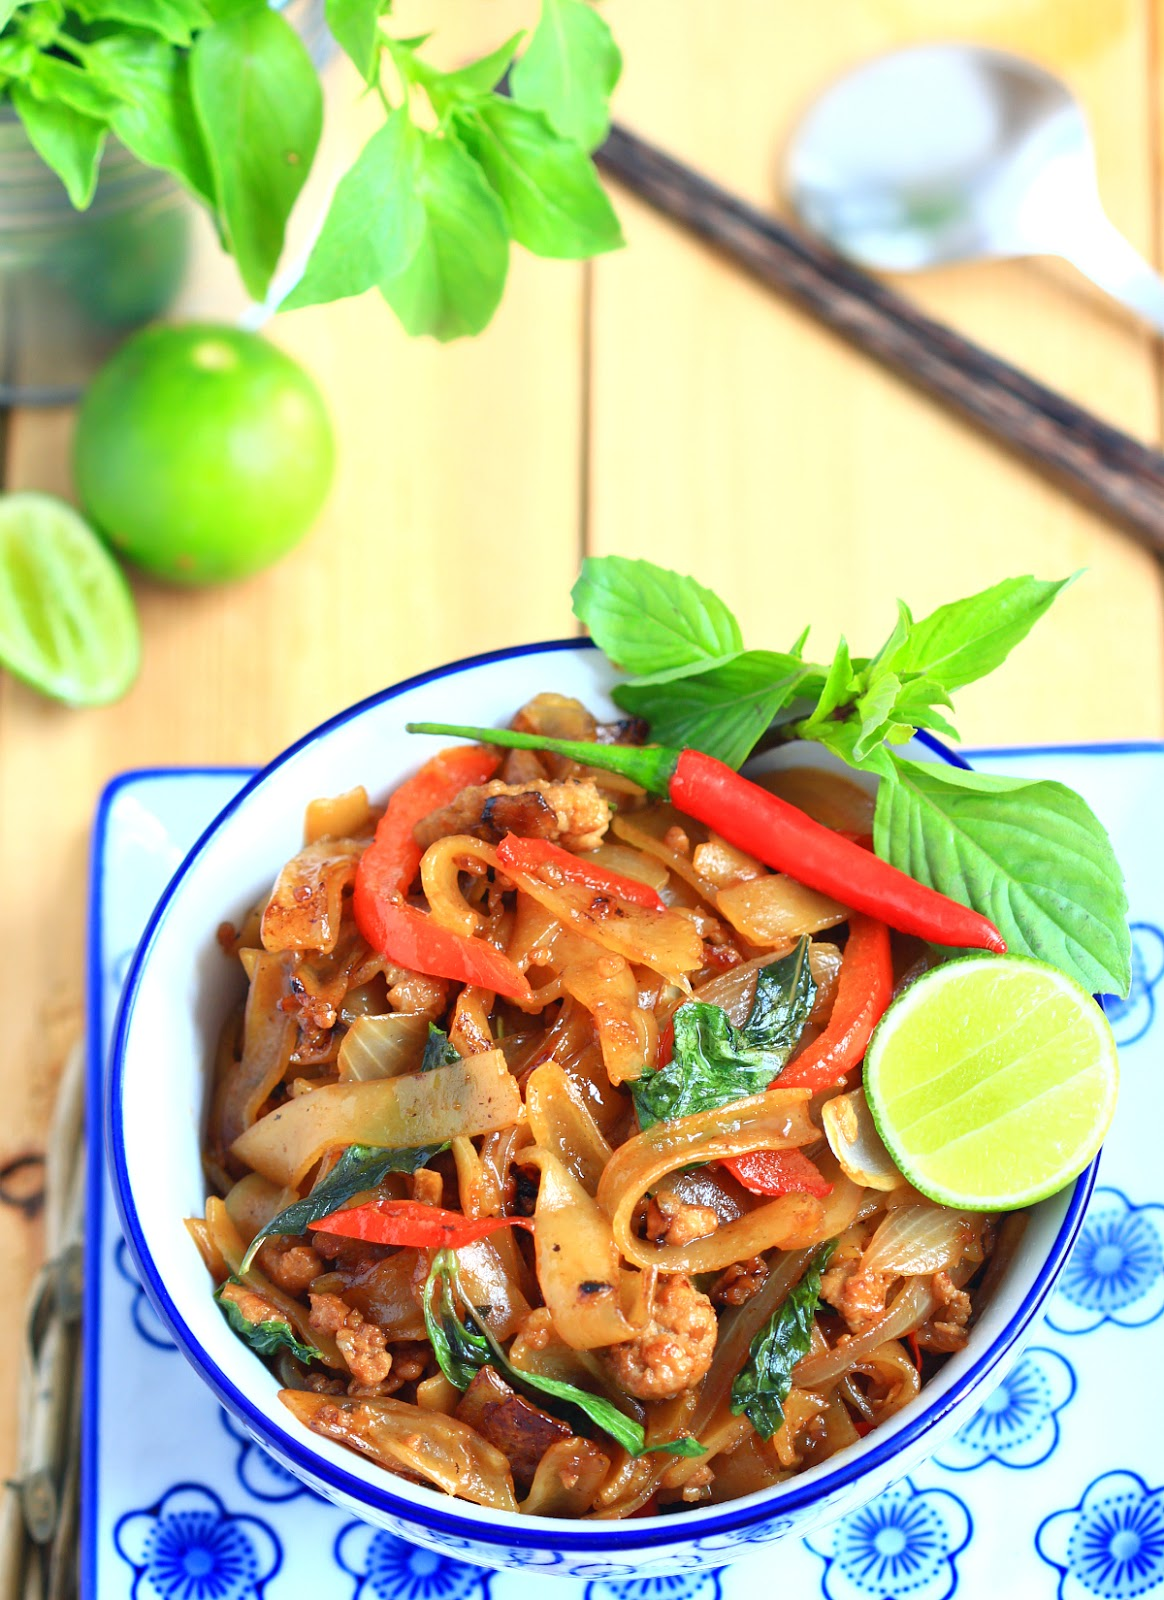 my bare cupboard: Pad kee mao / drunken noodles / spicy ...